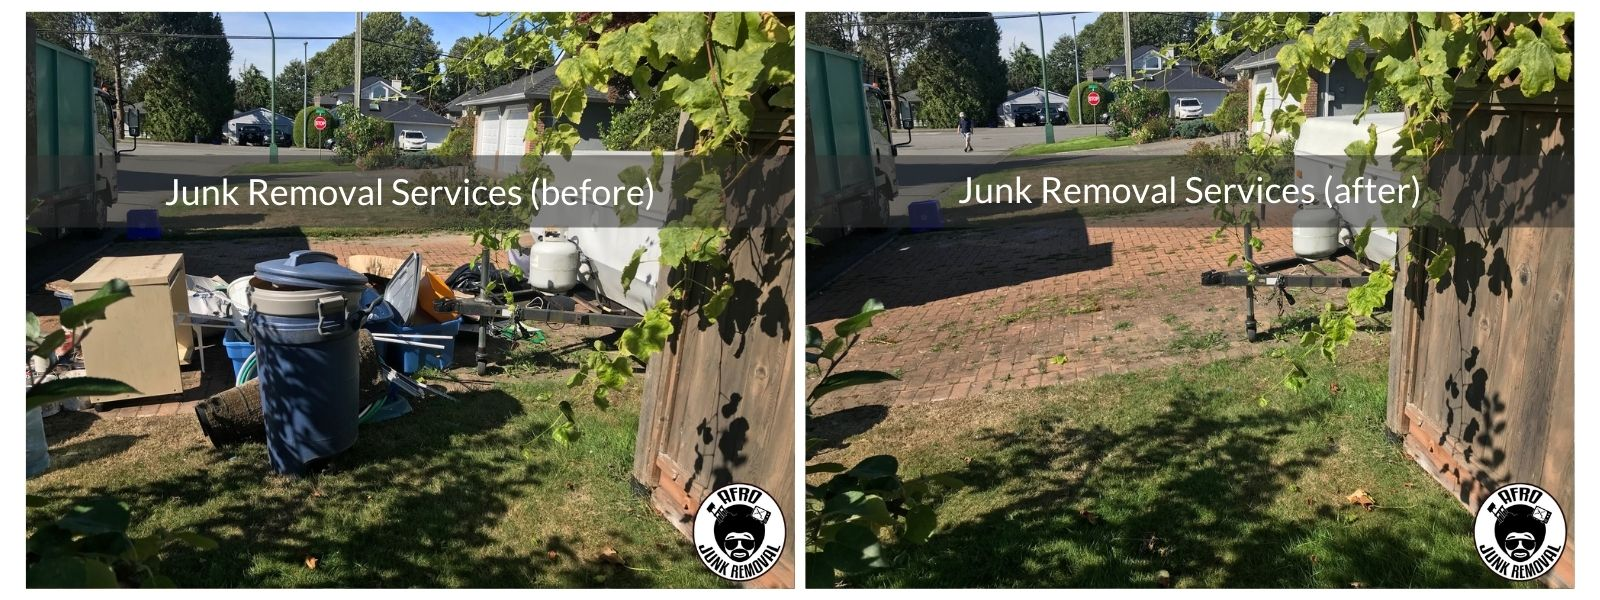 Junk Removal Services Photo, Before and After